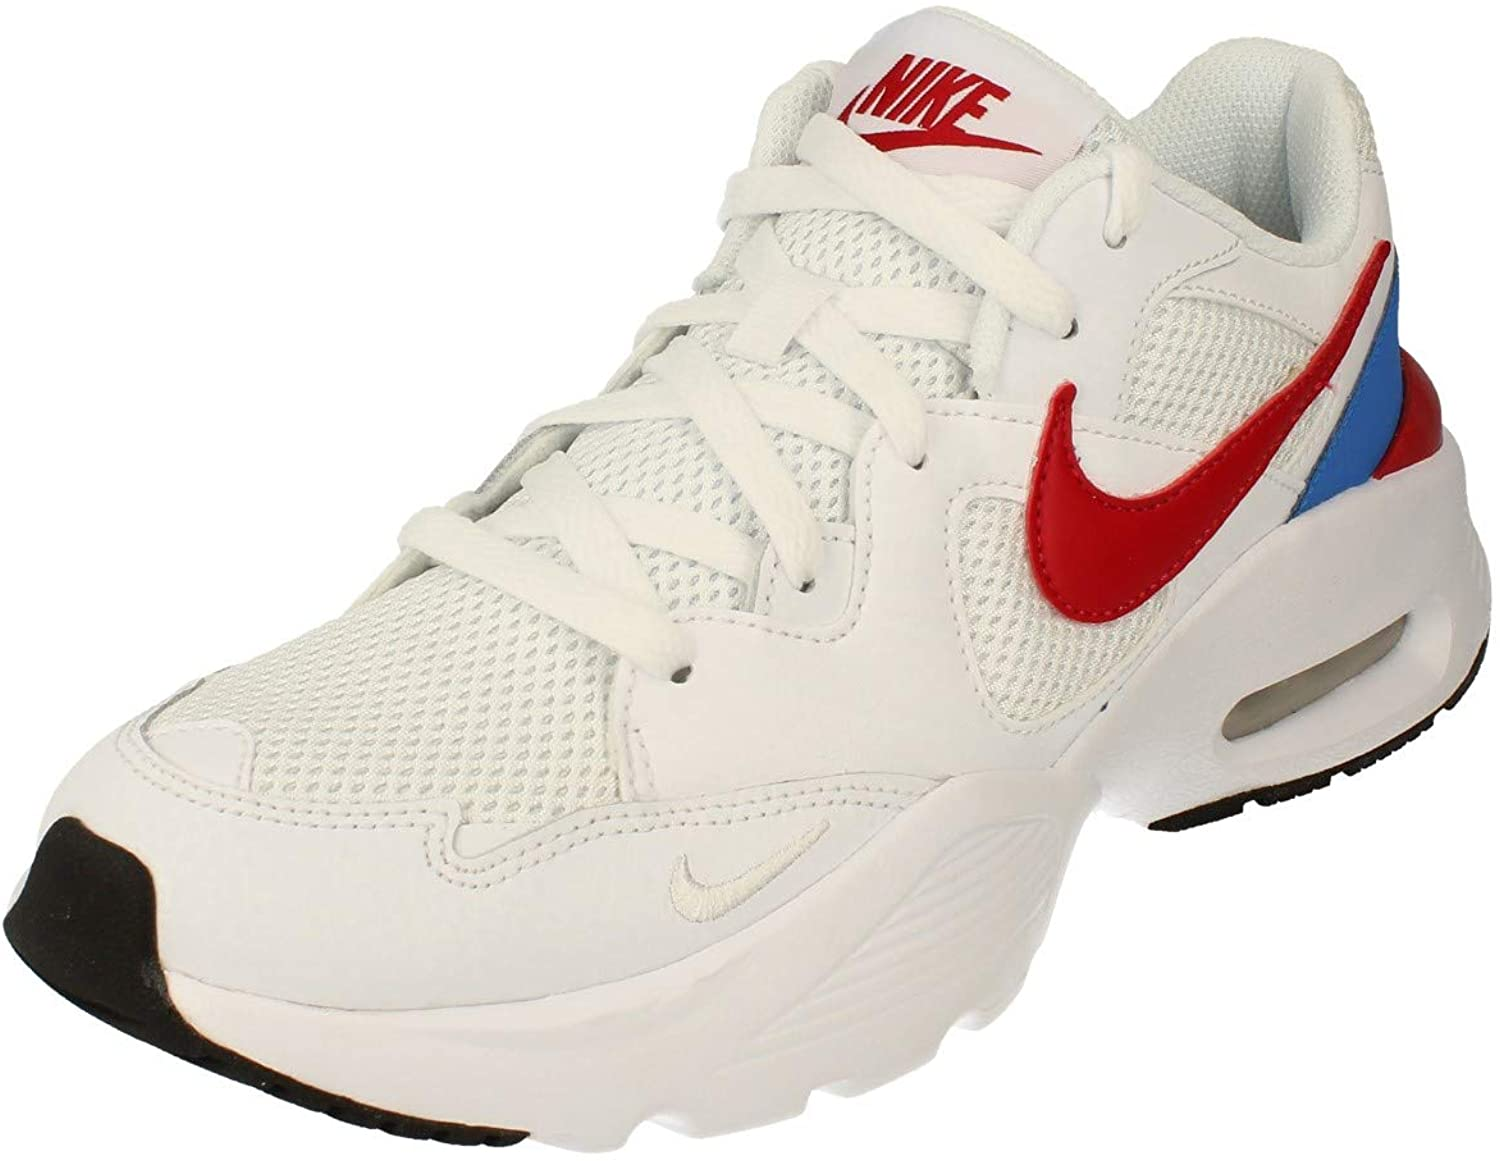 Nike Men's Rare Safety and trust Race Running Shoe